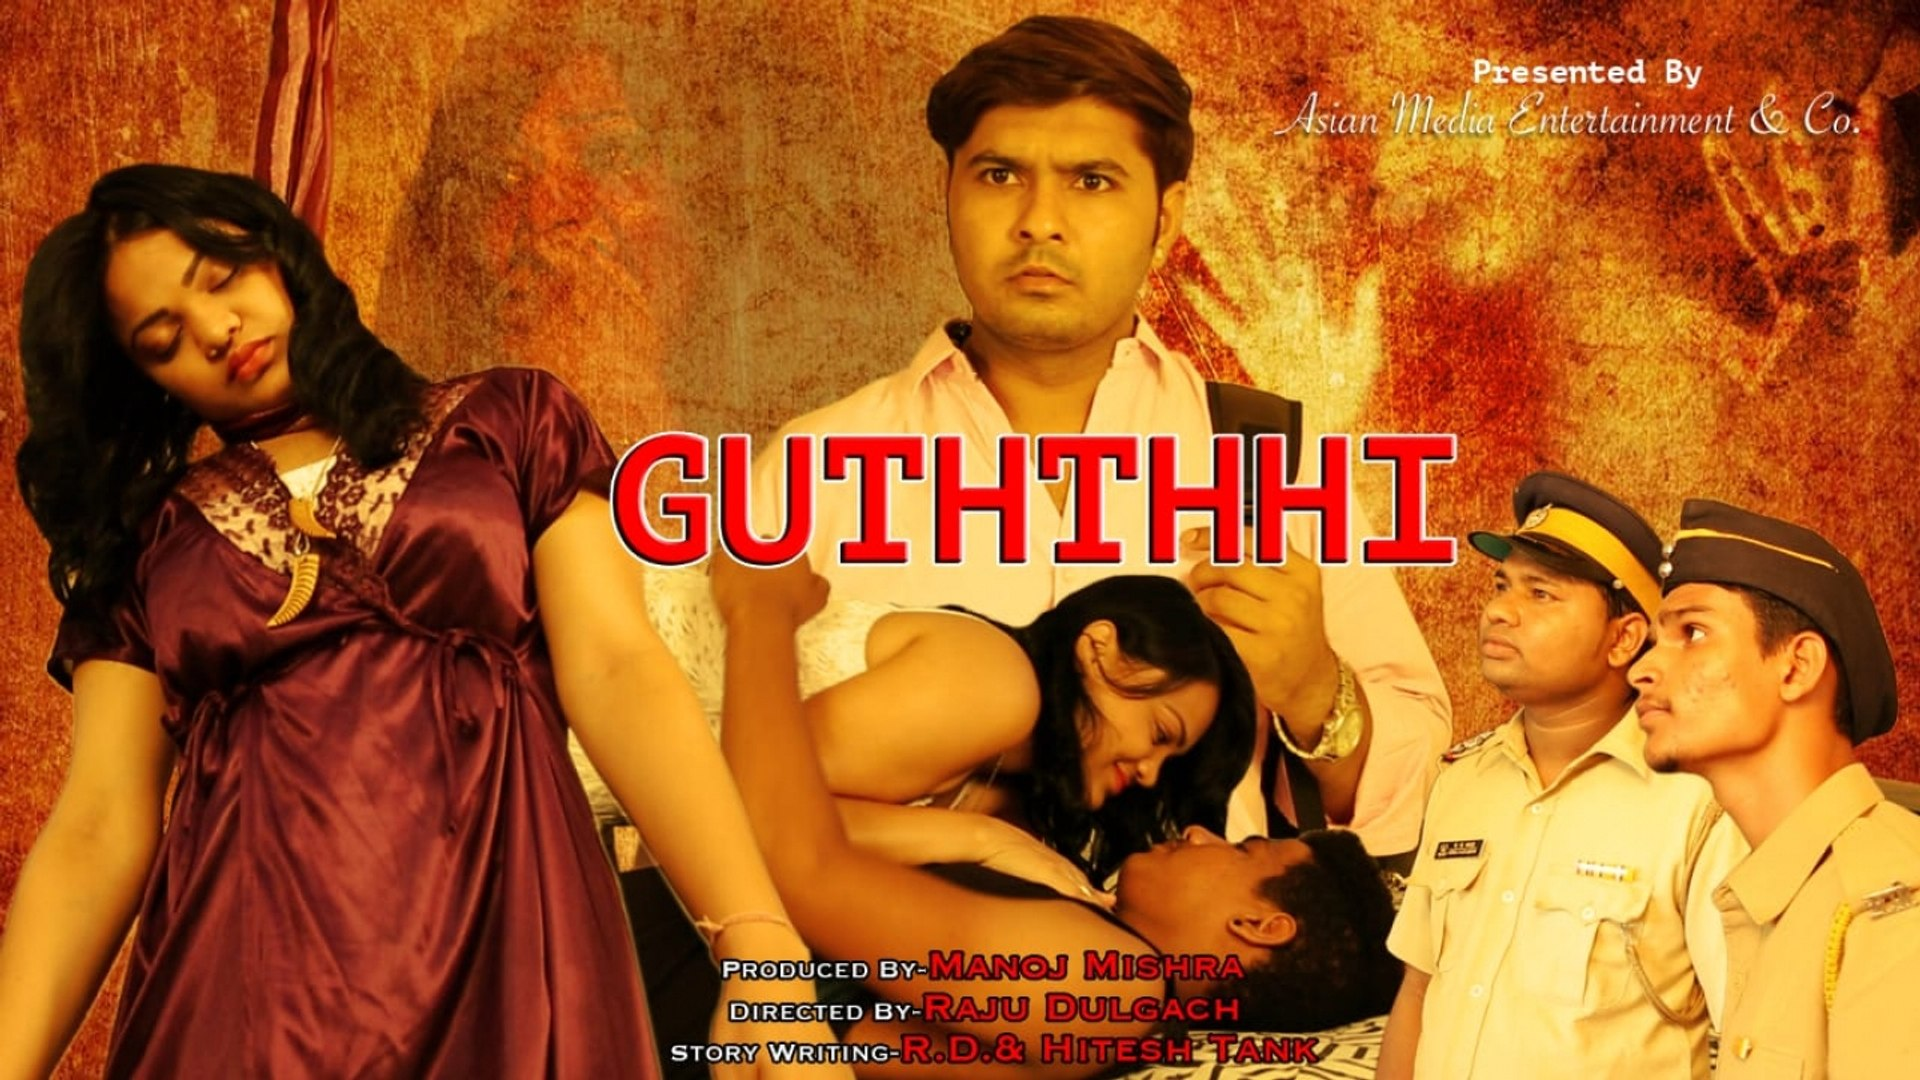 गुत्थि - Gutthi | हिंदी फिल्म | Short Film | Hindi | Full Movie | True Story Of a Lonely Housewife